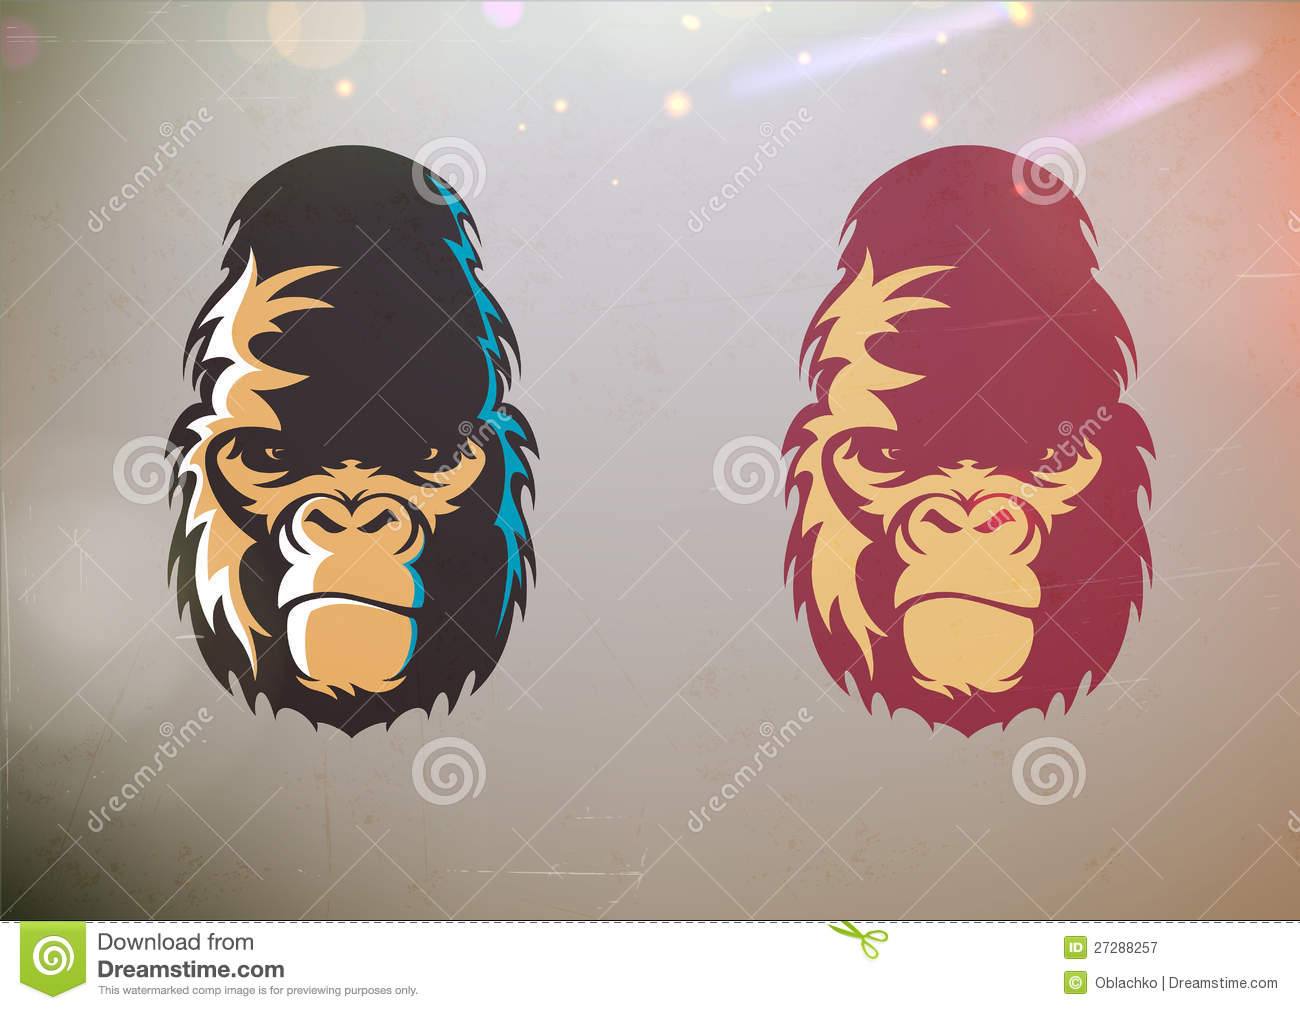 Vector Illustration Of Fun Cartoon Stylized Gorilla Smirk Face In Two Color Variations